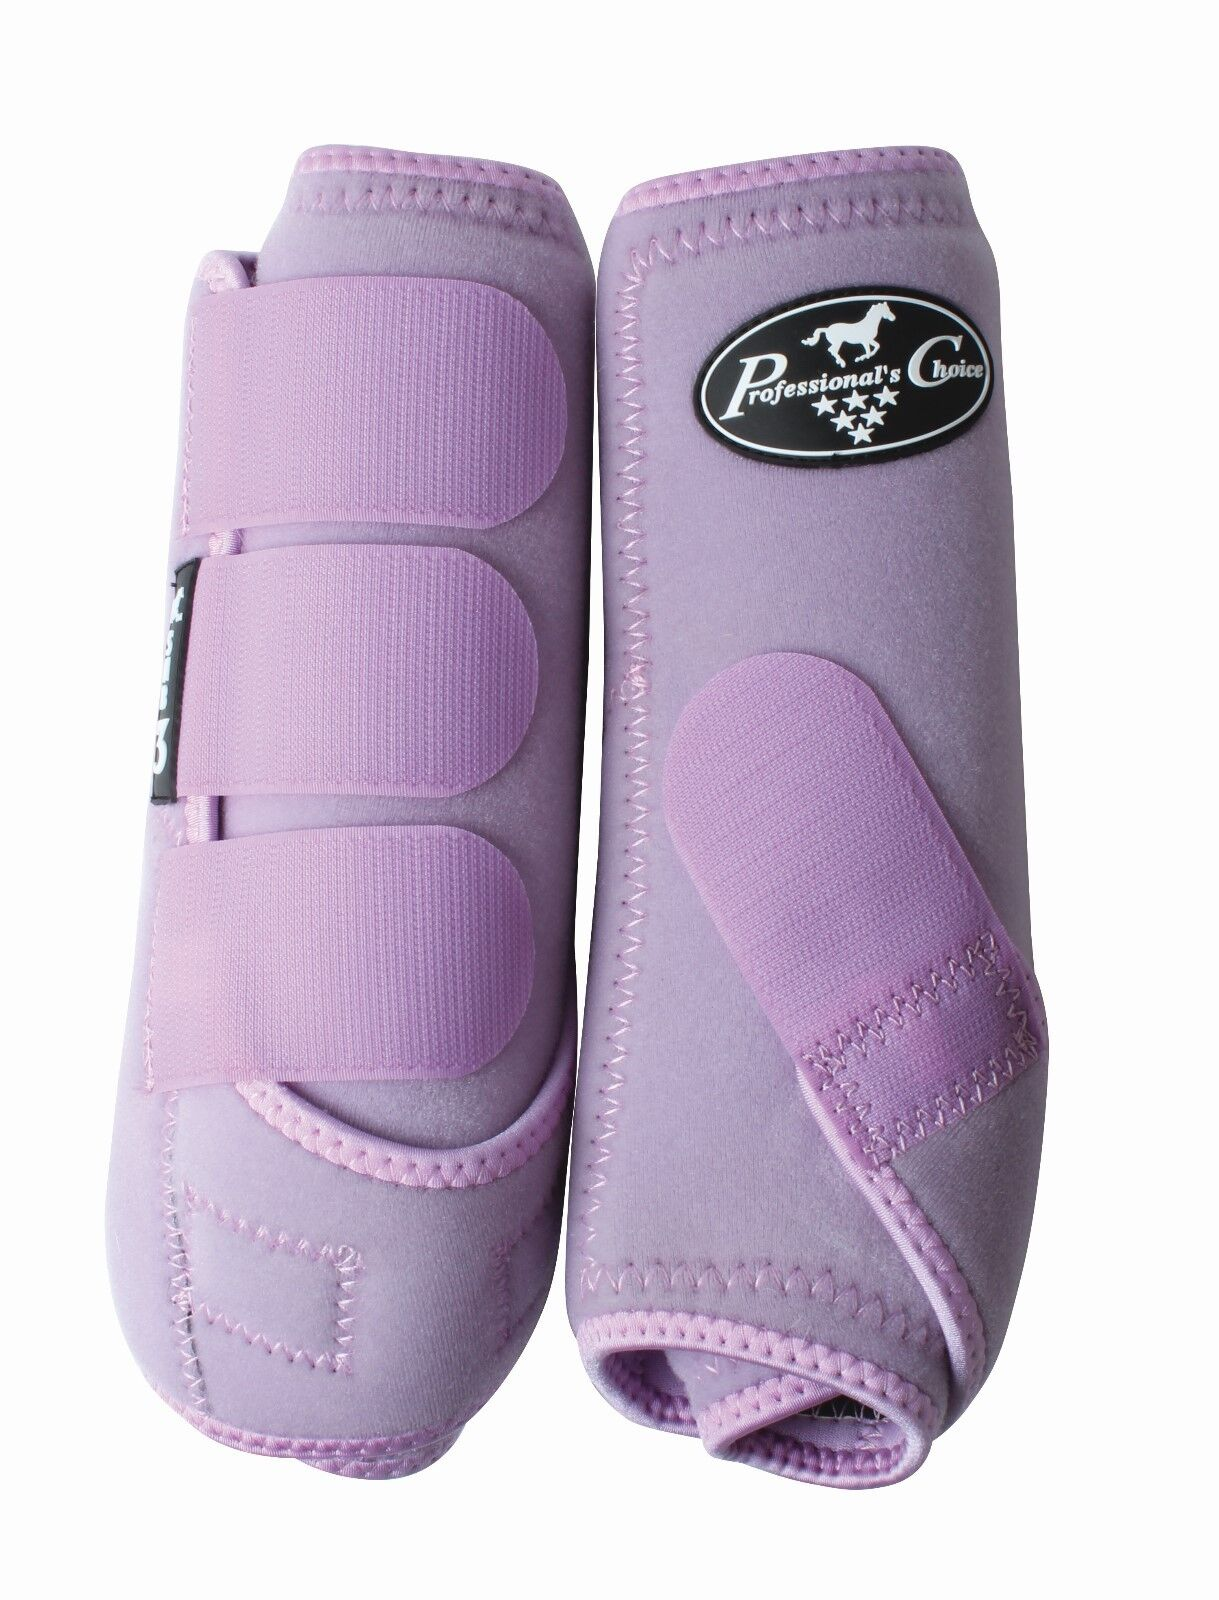 Professional's  Choice SMB3 Pair Horse Equine SMB Medicine Boots purplec Purple  be in great demand